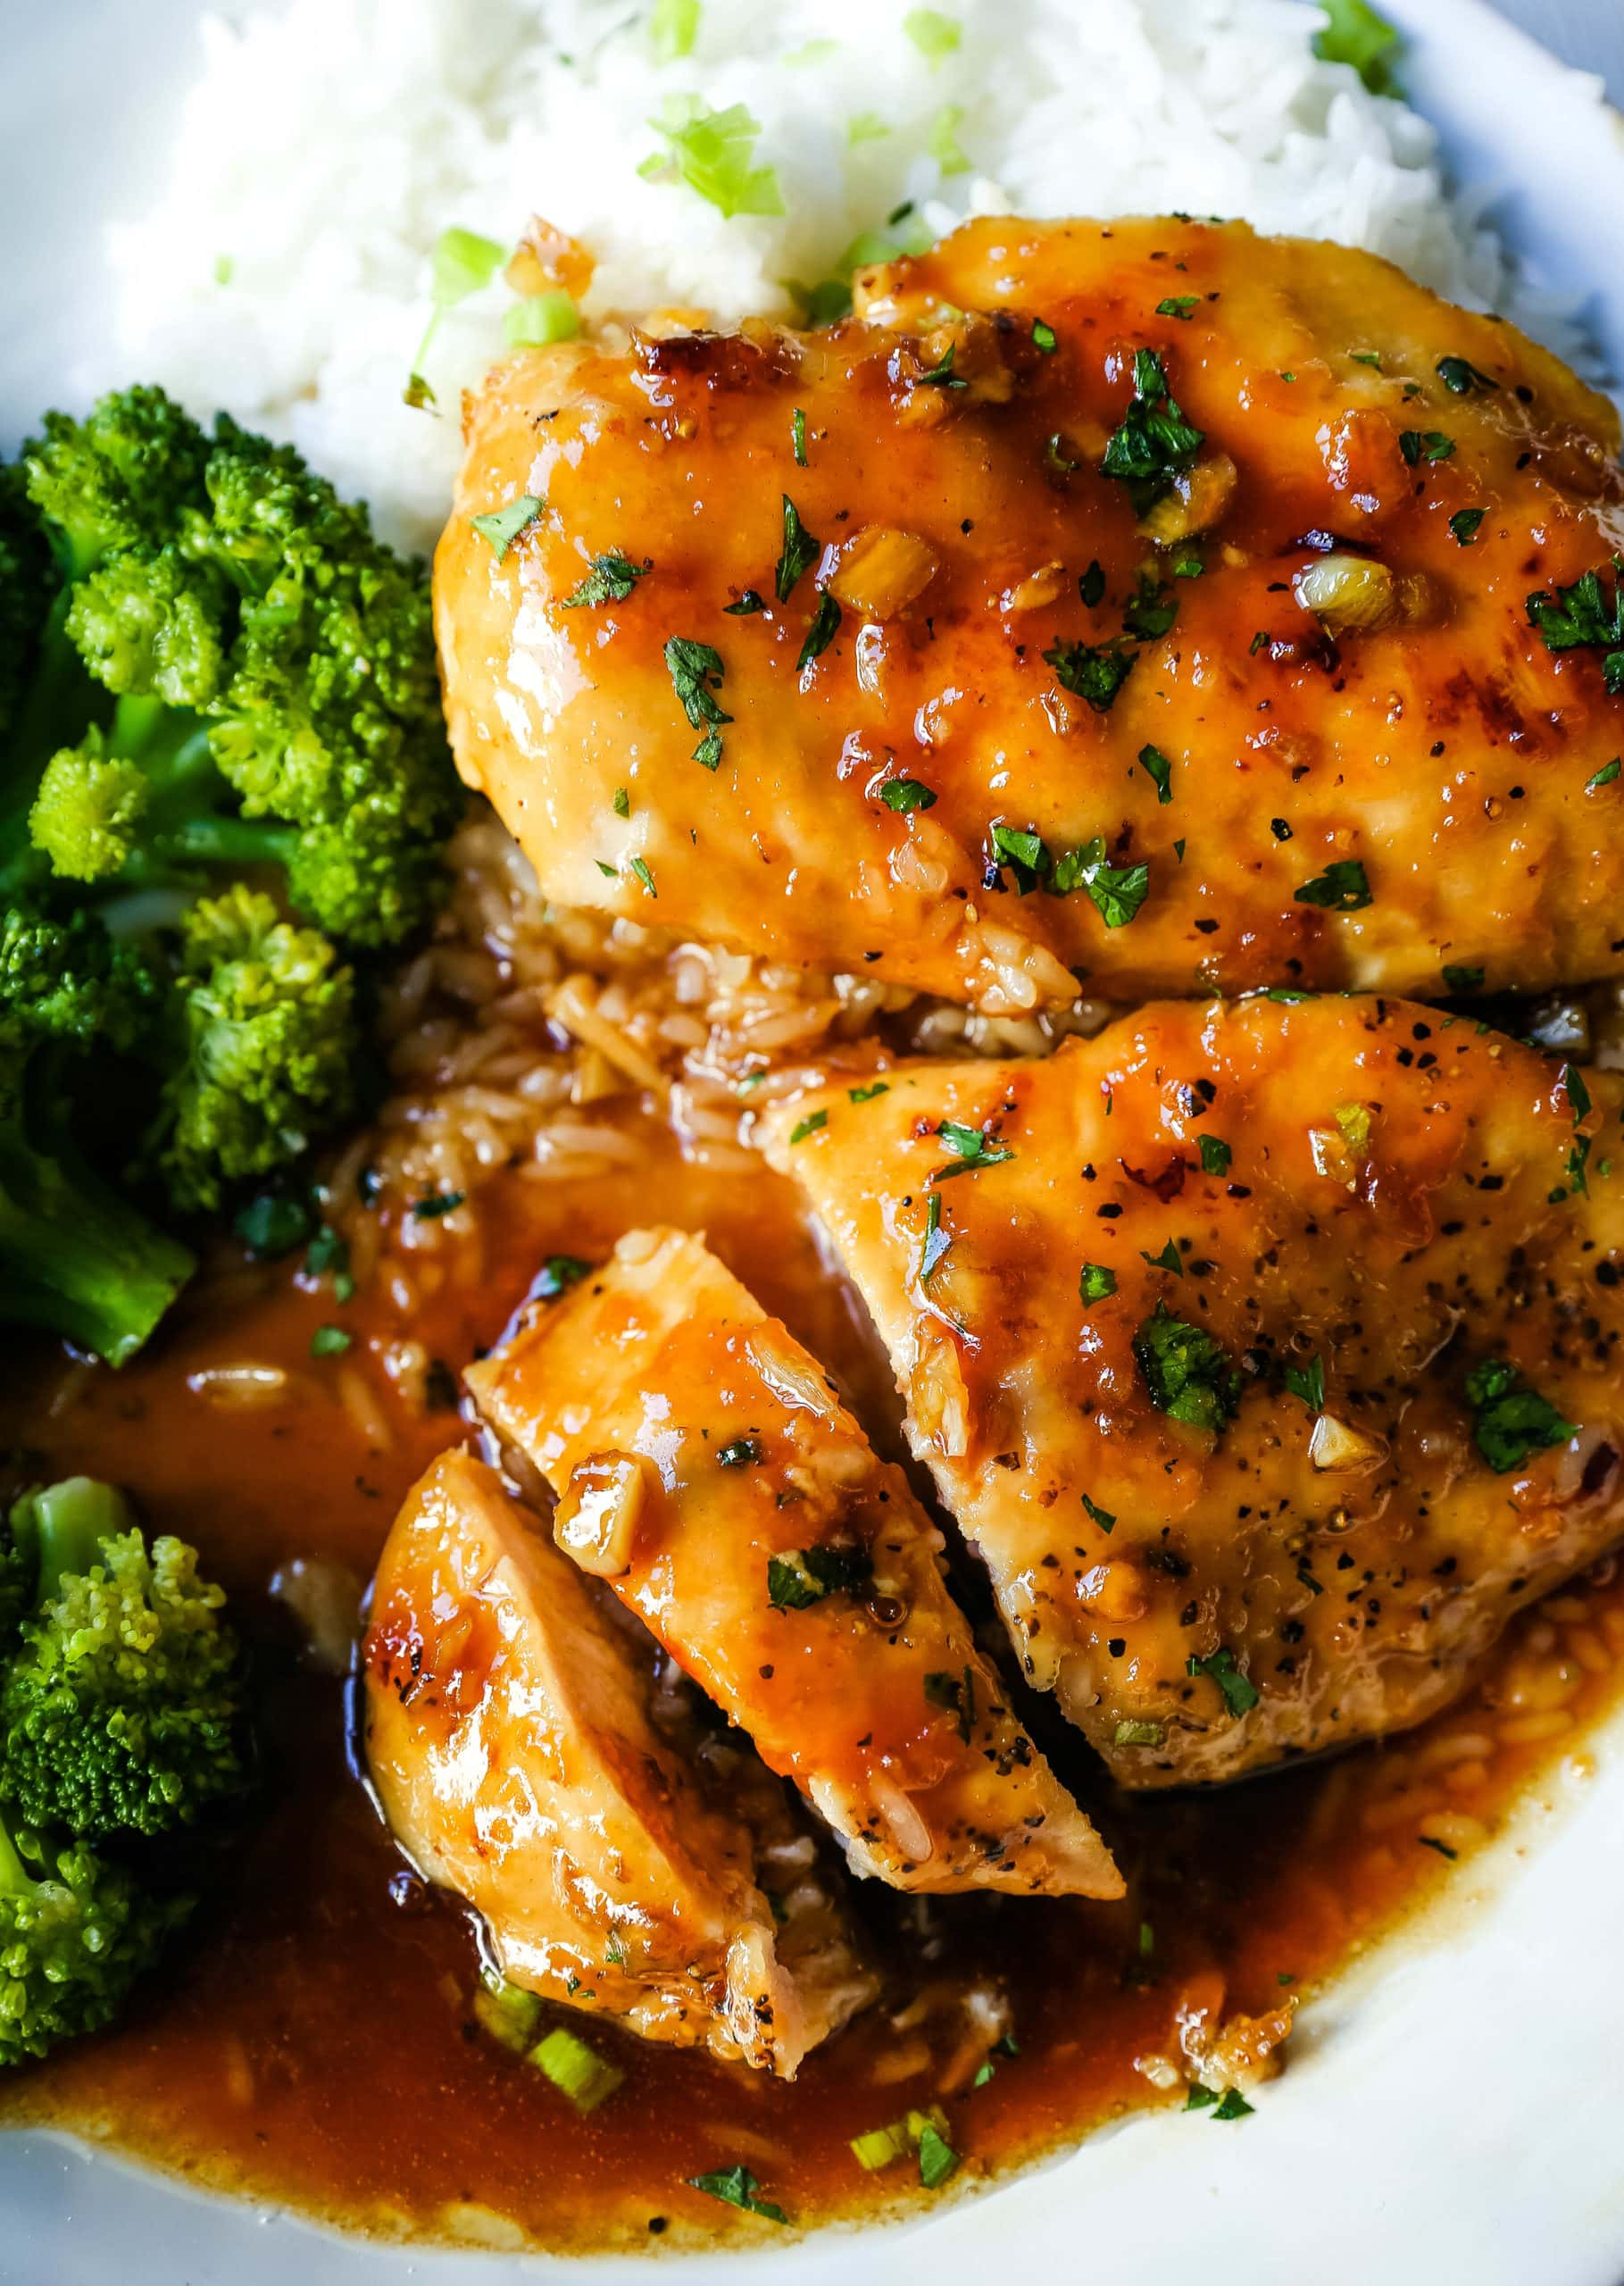 Honey Garlic Chicken. Quick and easy skillet honey garlic chicken breast. Seared chicken breast in an Asian honey garlic sauce. Made in less than 15 minutes! www.modernhoney.com #chicken #dinner #quickdinner #chickenrecipe